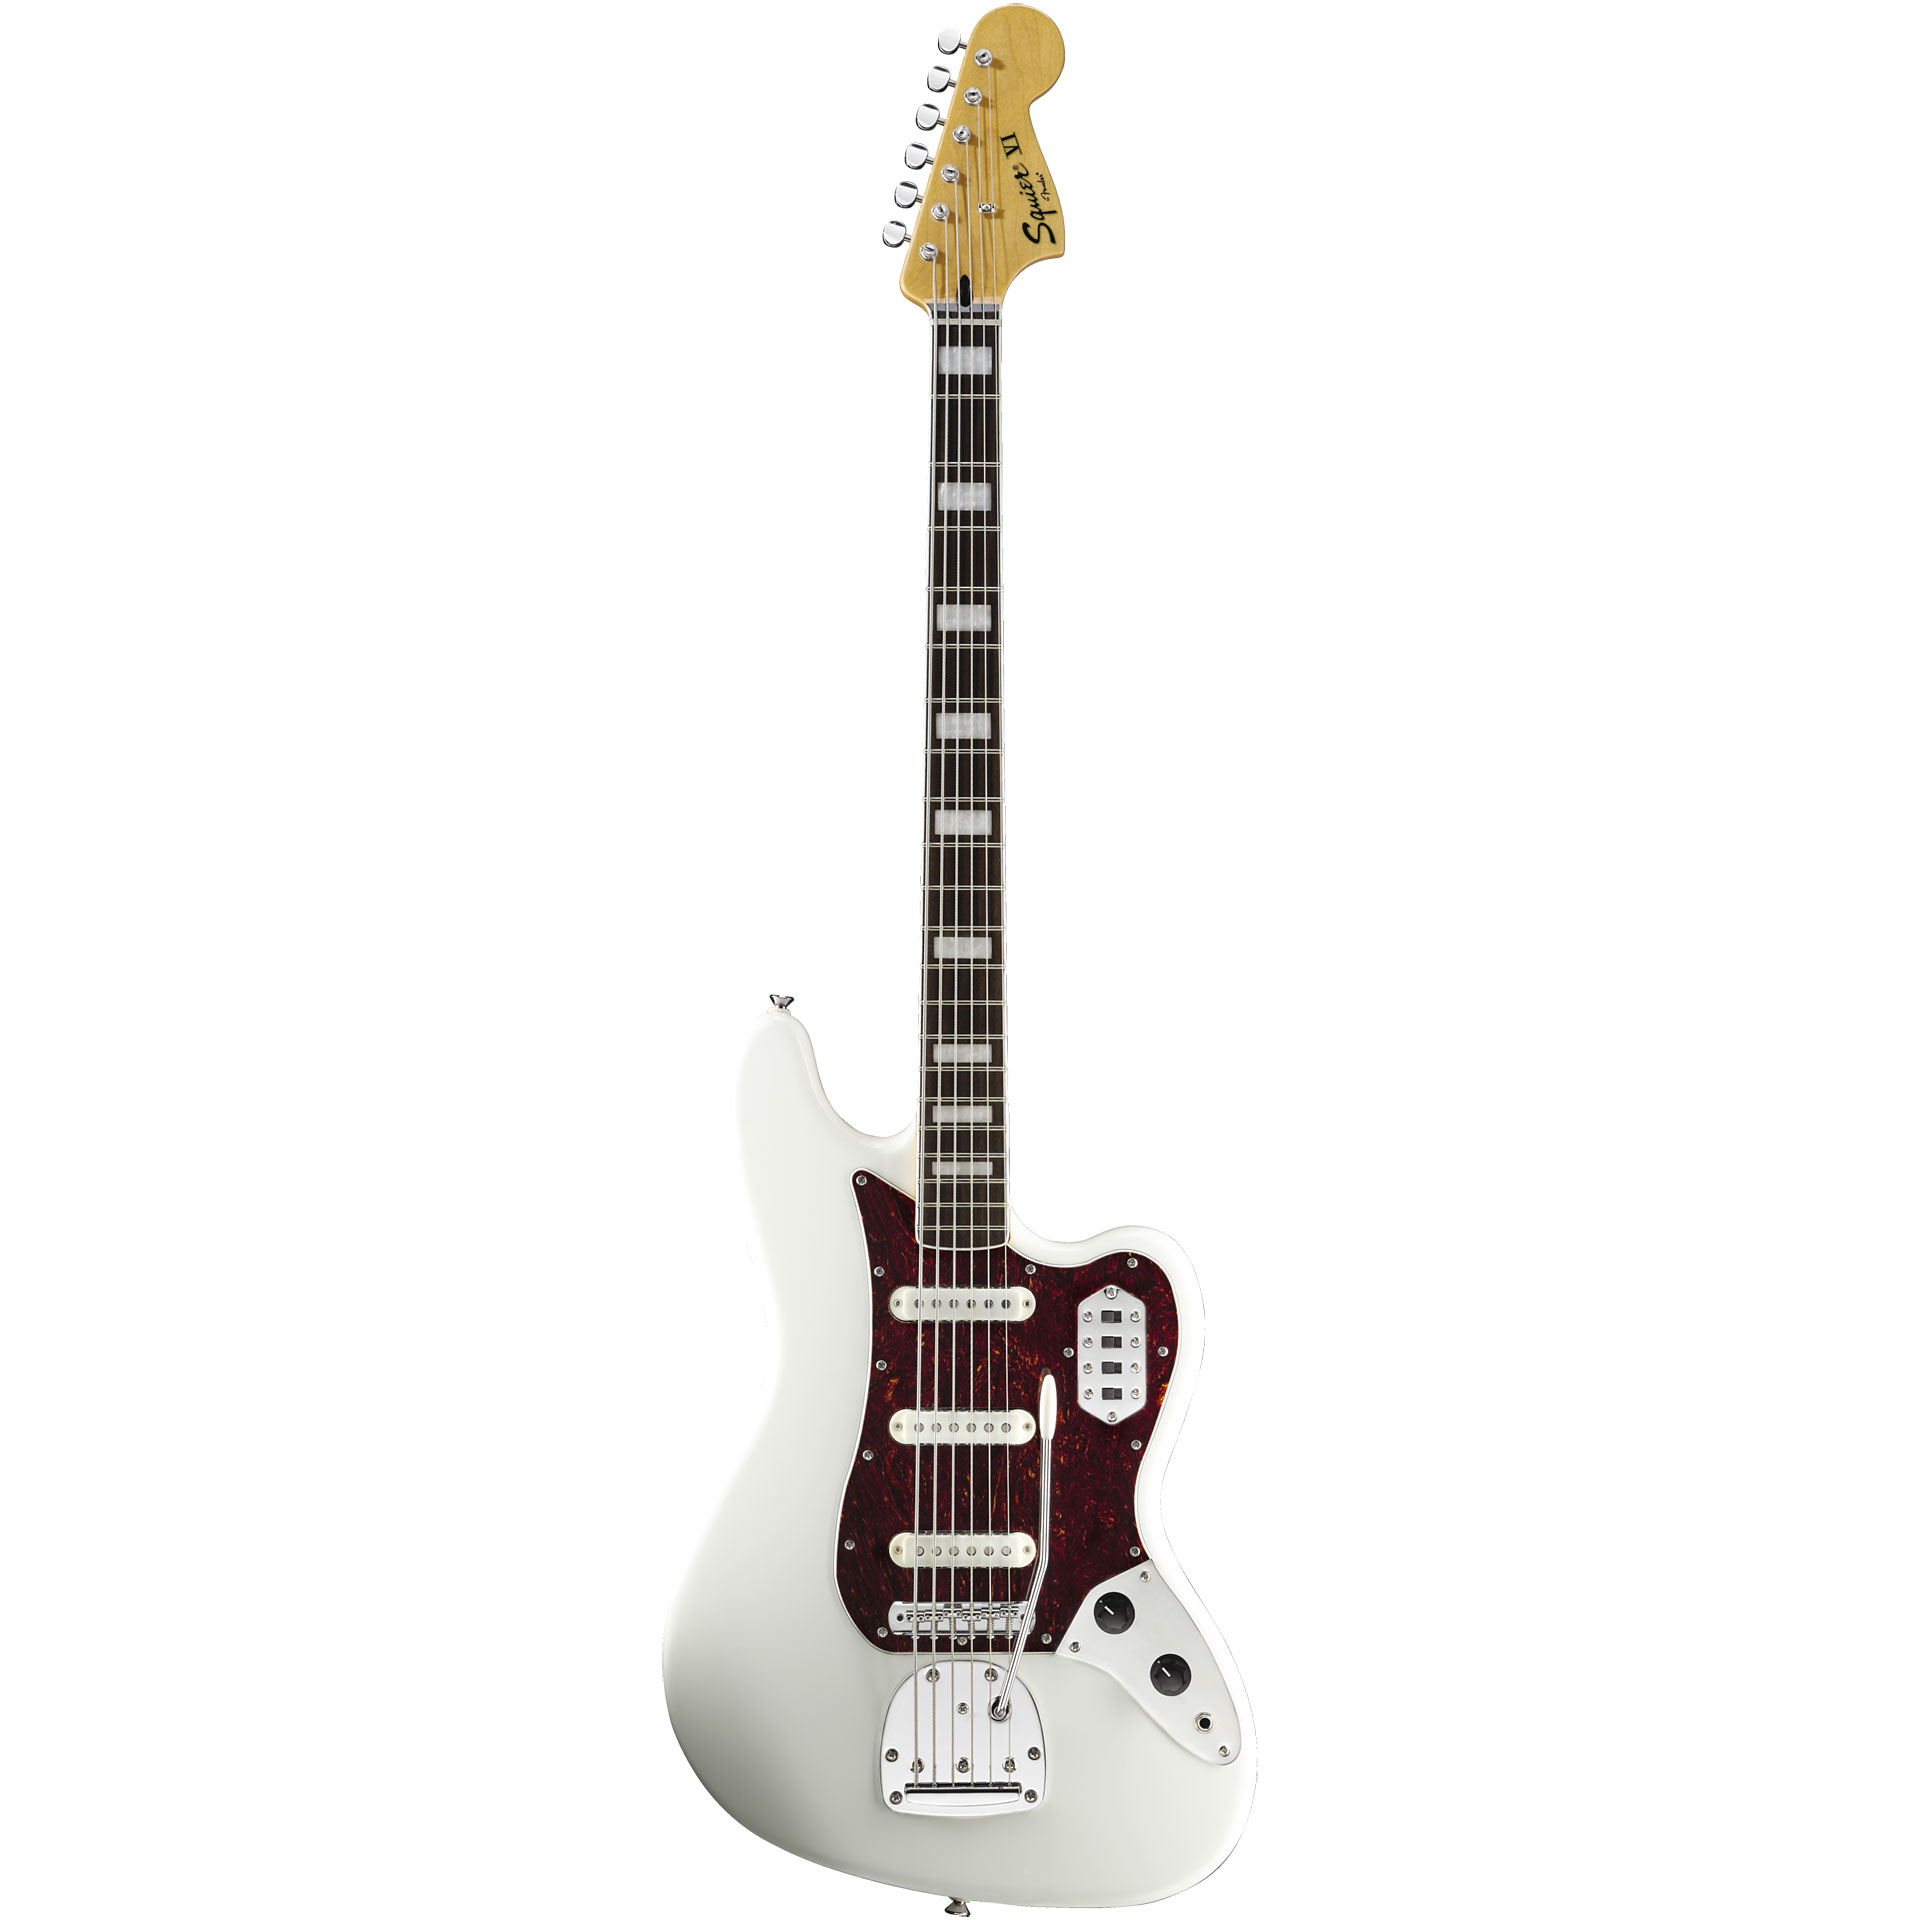 squier vintage modified bass vi ow electric bass guitar. Black Bedroom Furniture Sets. Home Design Ideas